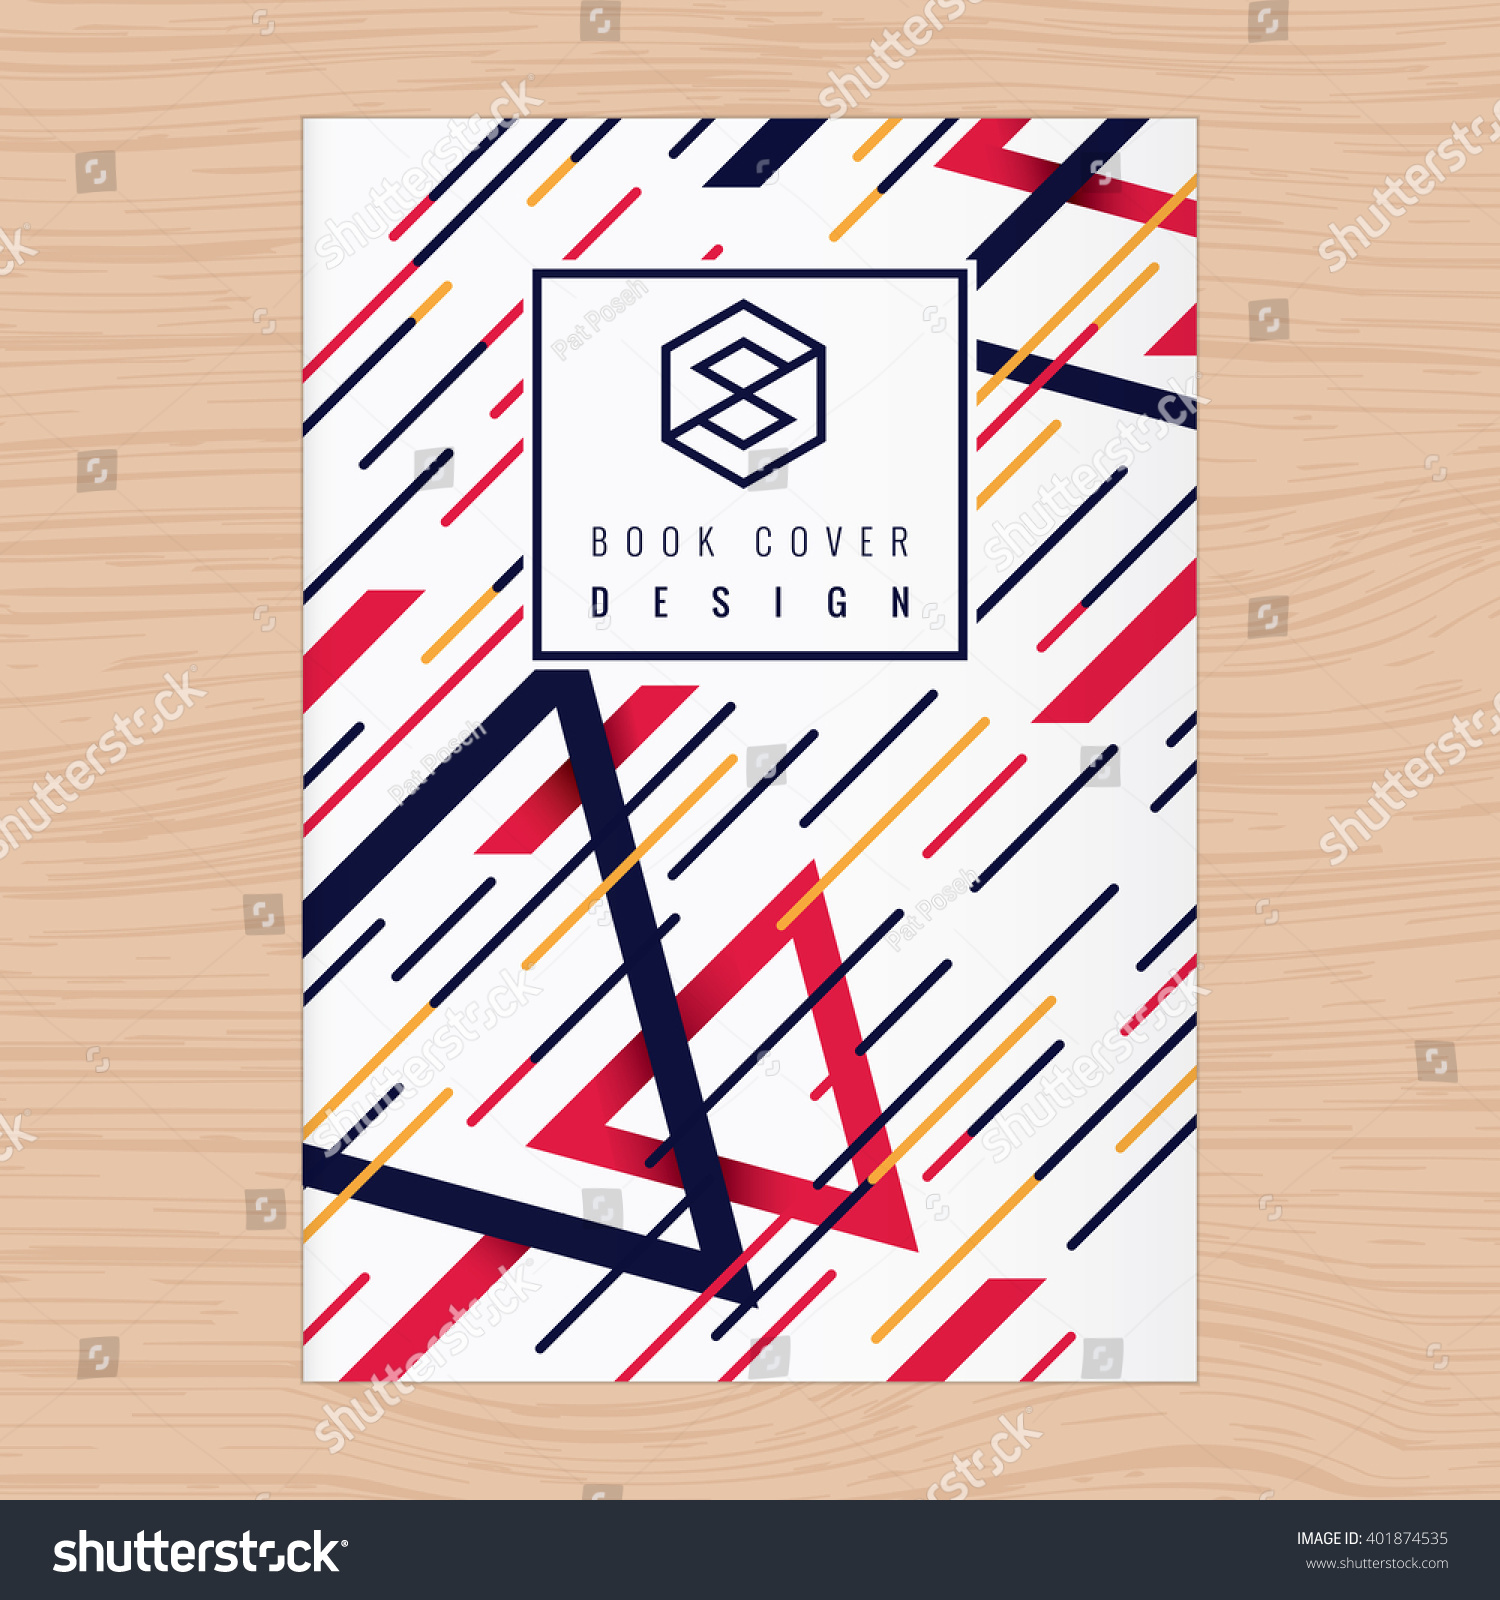 Book Cover Design Abstract : Abstract background book cover poster flyer 스톡 벡터